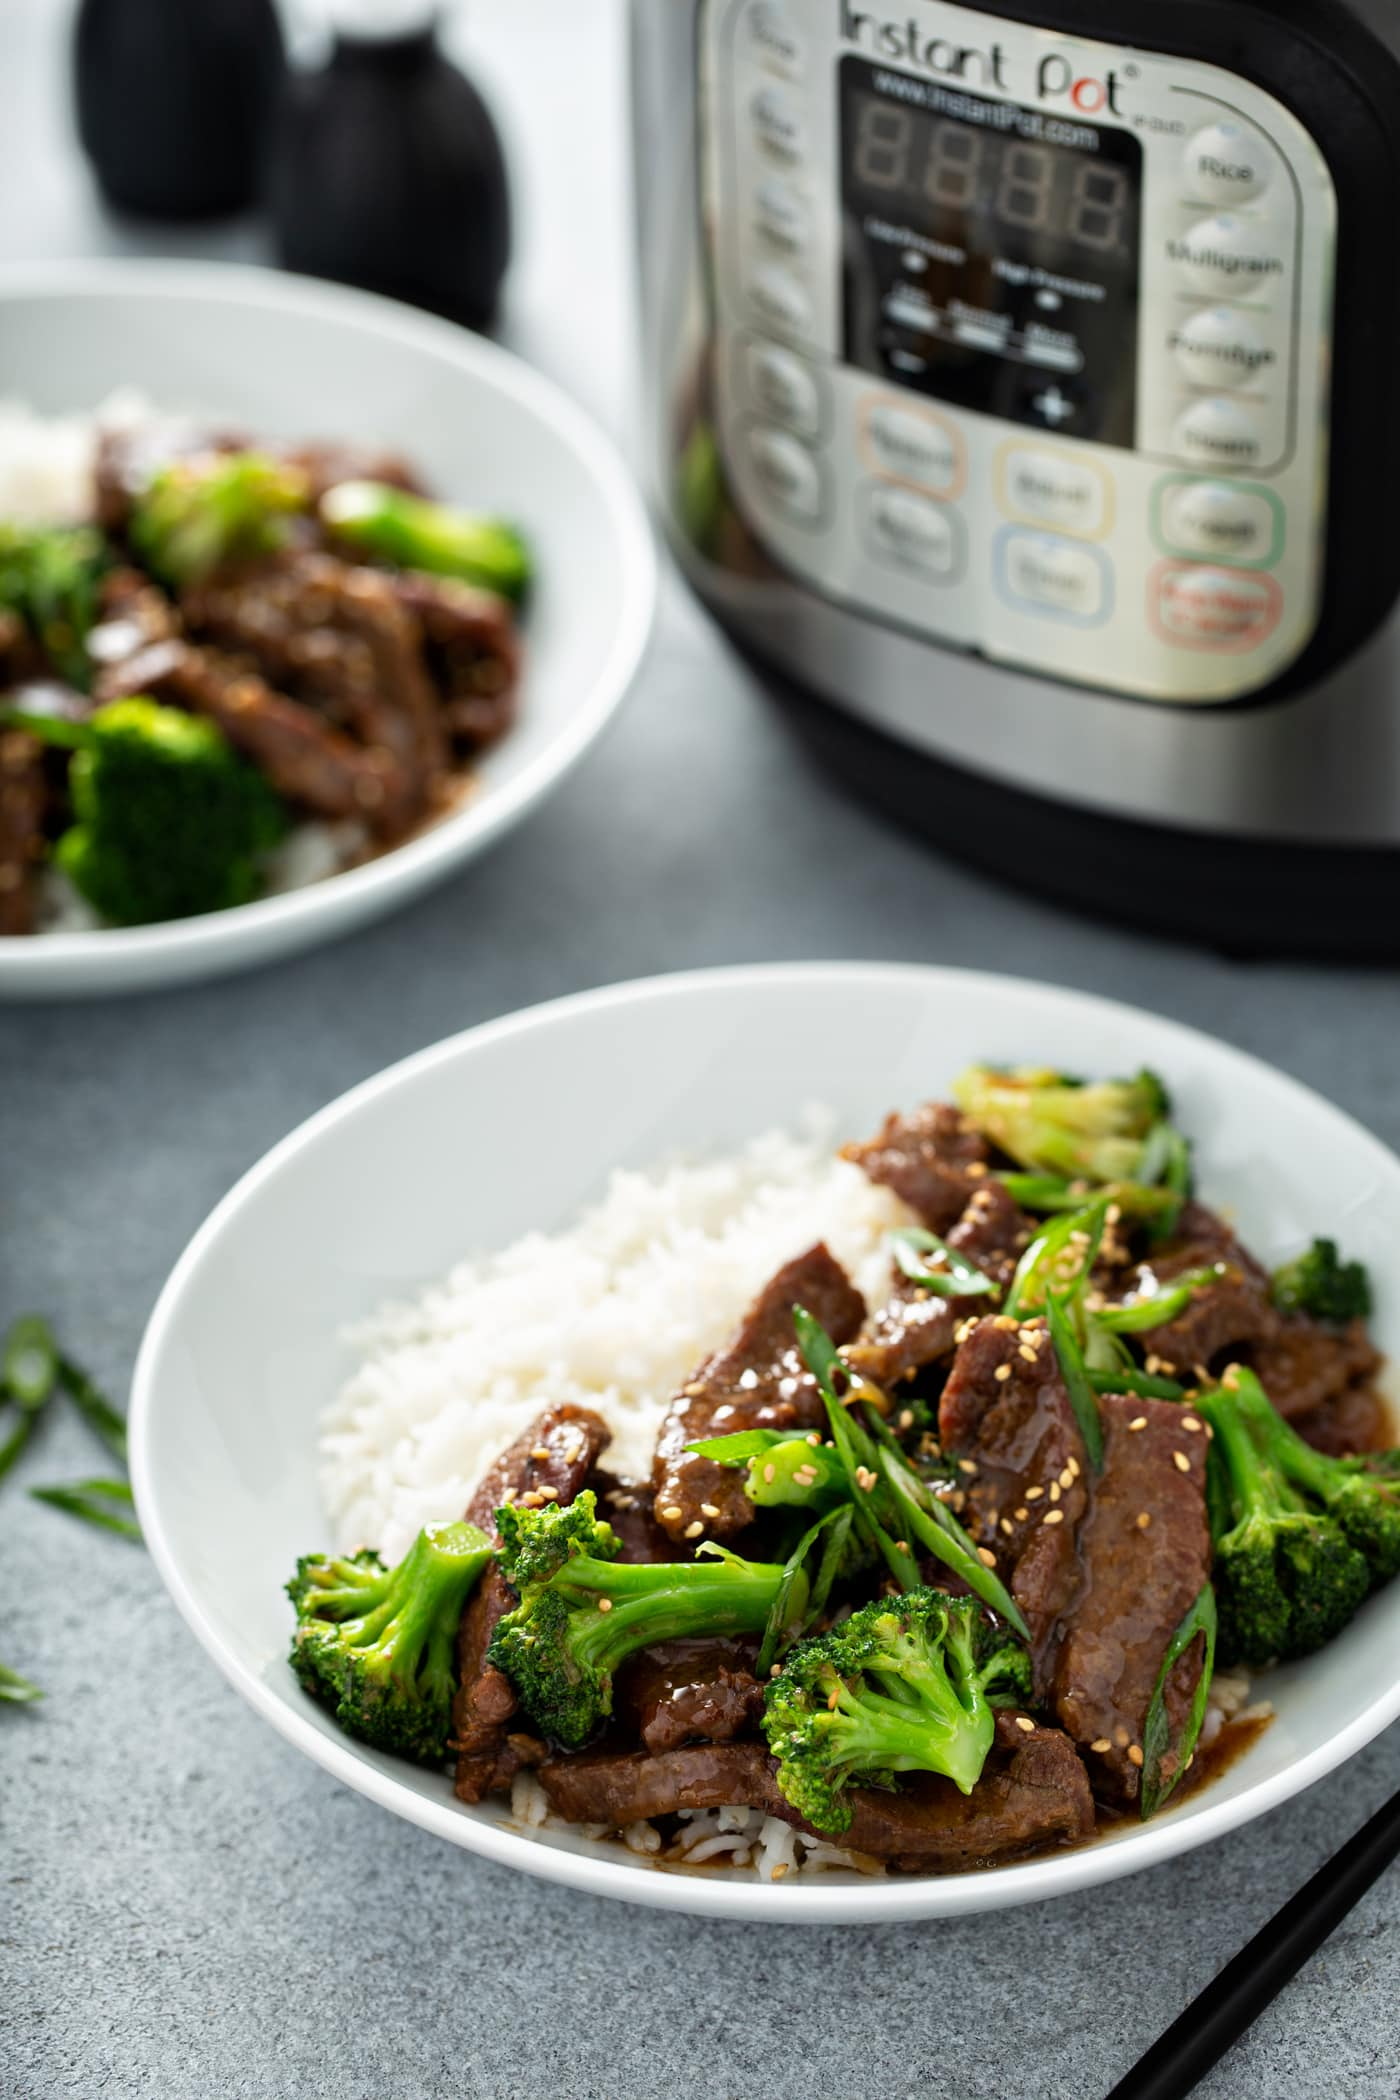 A photo of a white bowl full of beef and broccoli with a side of white rice.